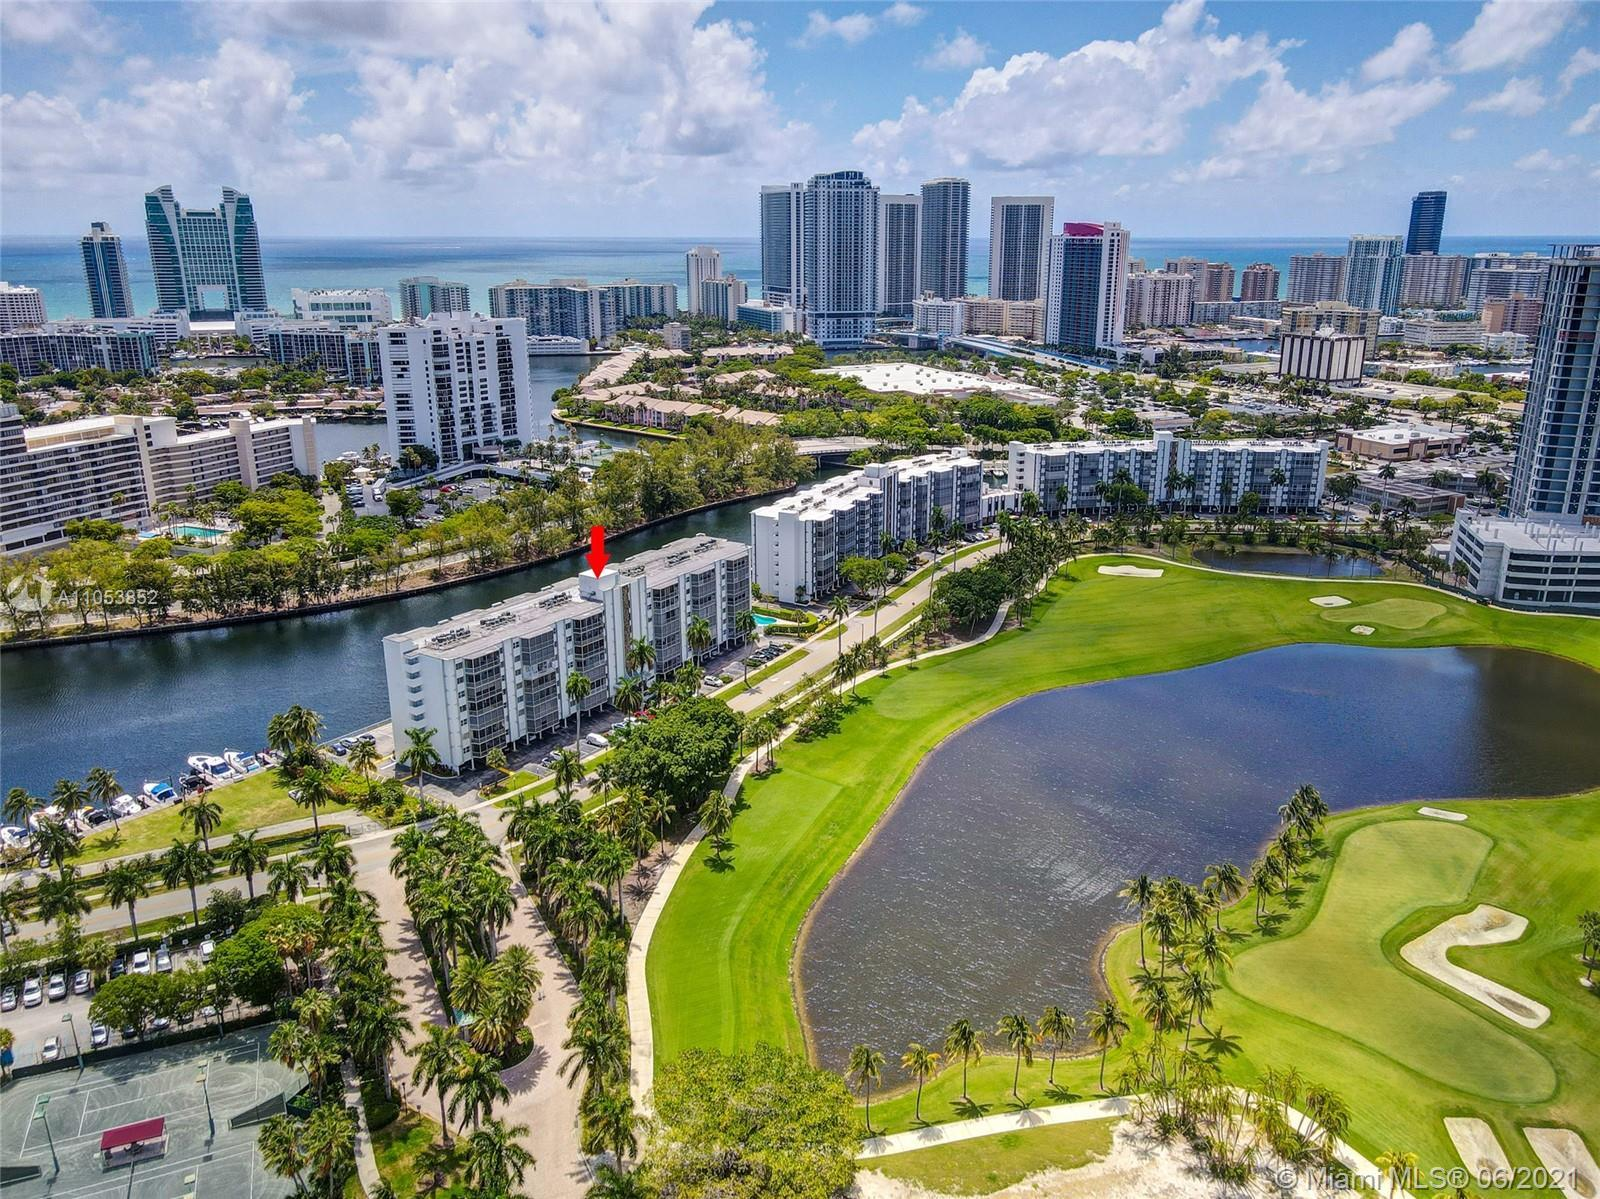 PENTHOUSE UNIT WITH REMARKABLE VIEWS OF THE DIPLOMAT GOLF AND COUNTRY CLUB. SPLIT FLOOR PLAN WITH TW